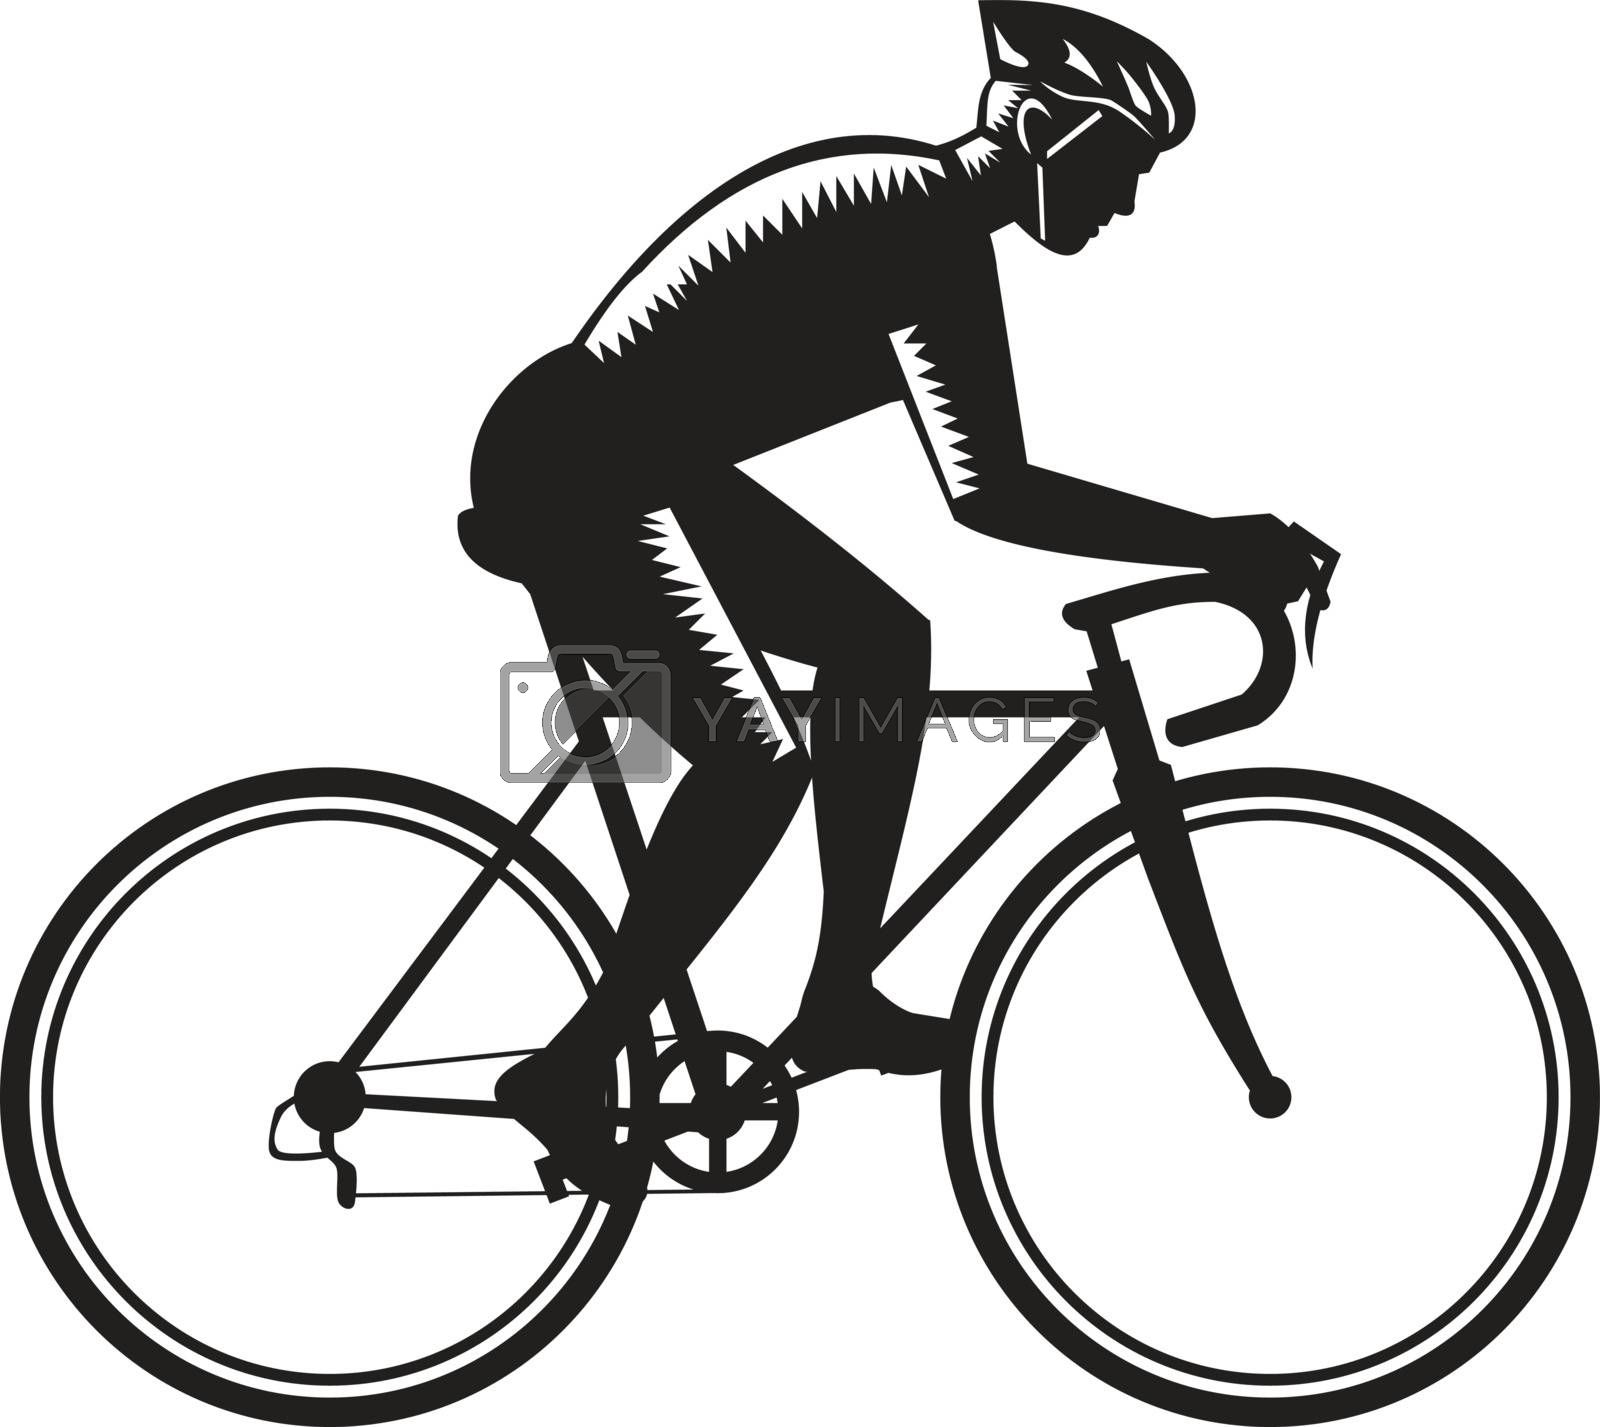 Illustration of road cyclist wearing helmet riding bicycle cycling biking racing viewed from the side set on isolated white background done in retro woodcut style.